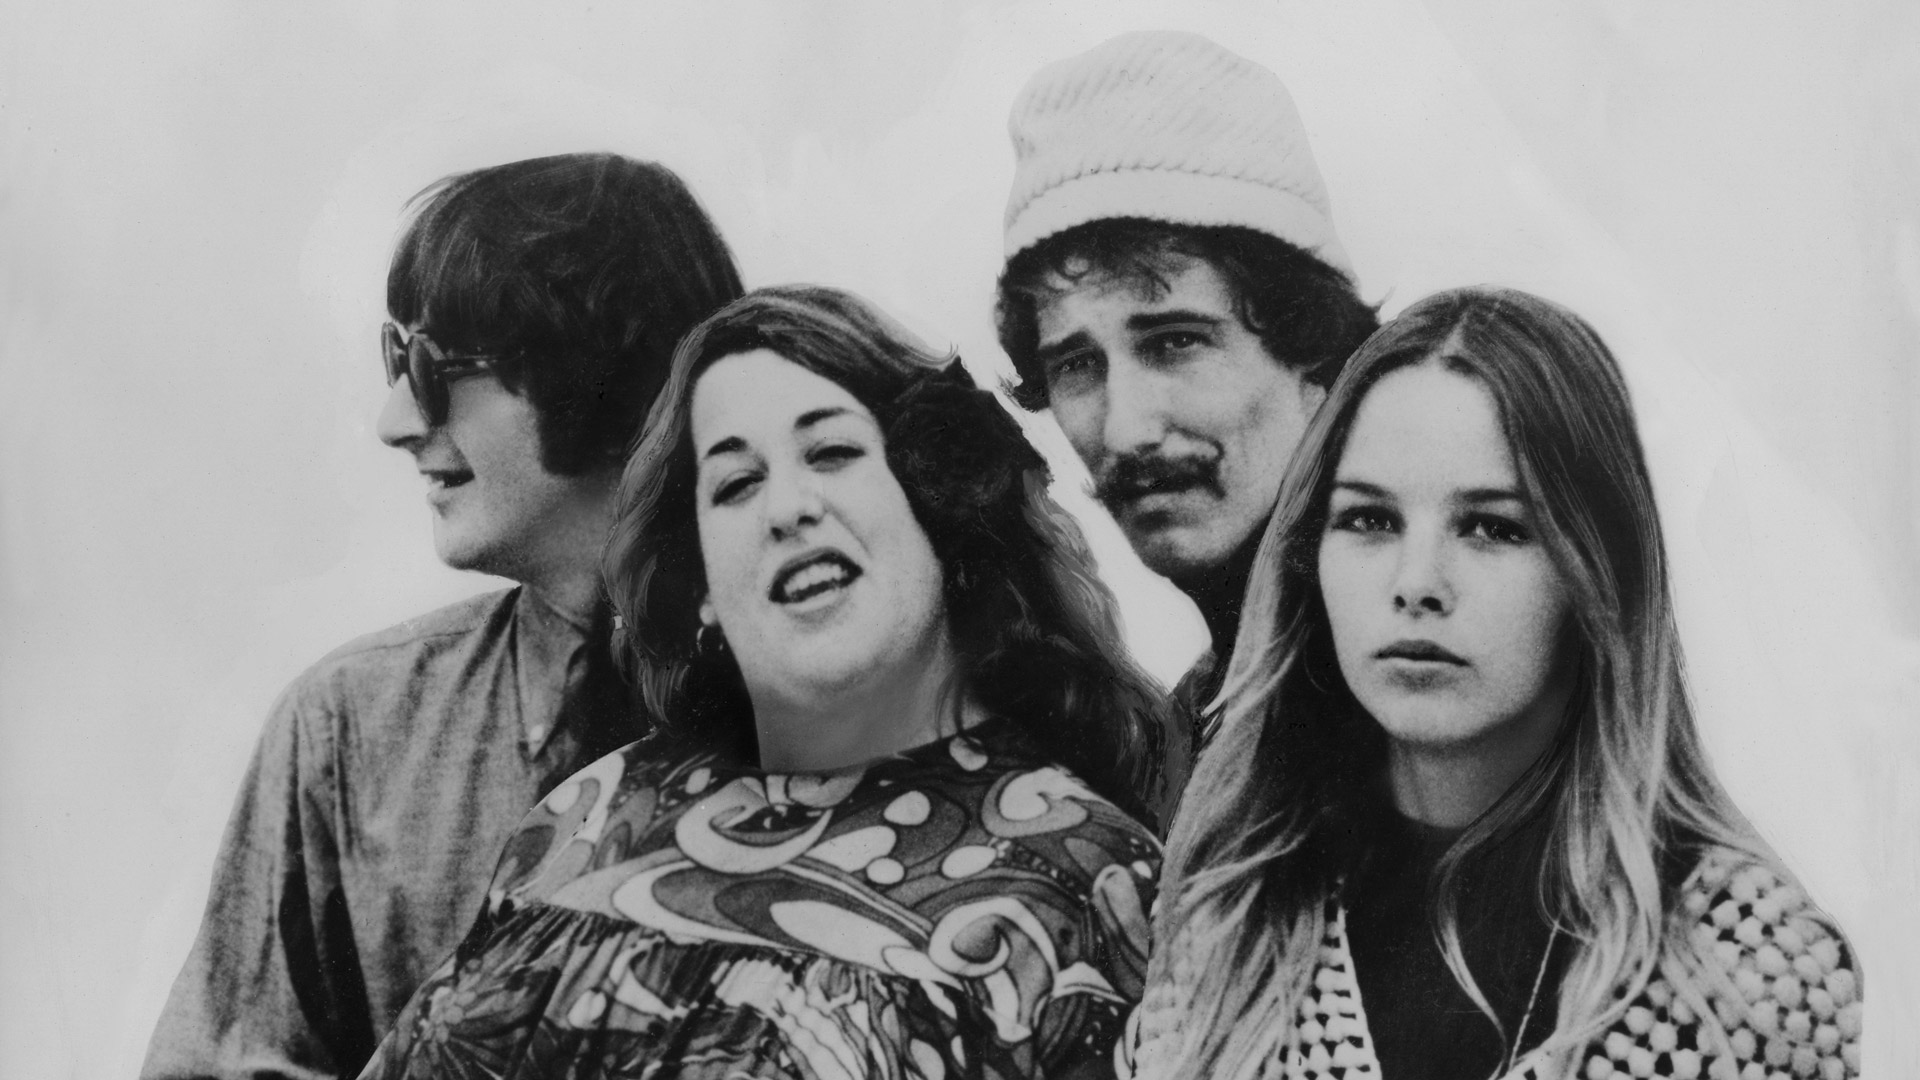 The Songs of the Mamas and the Papas - California Dreamin'